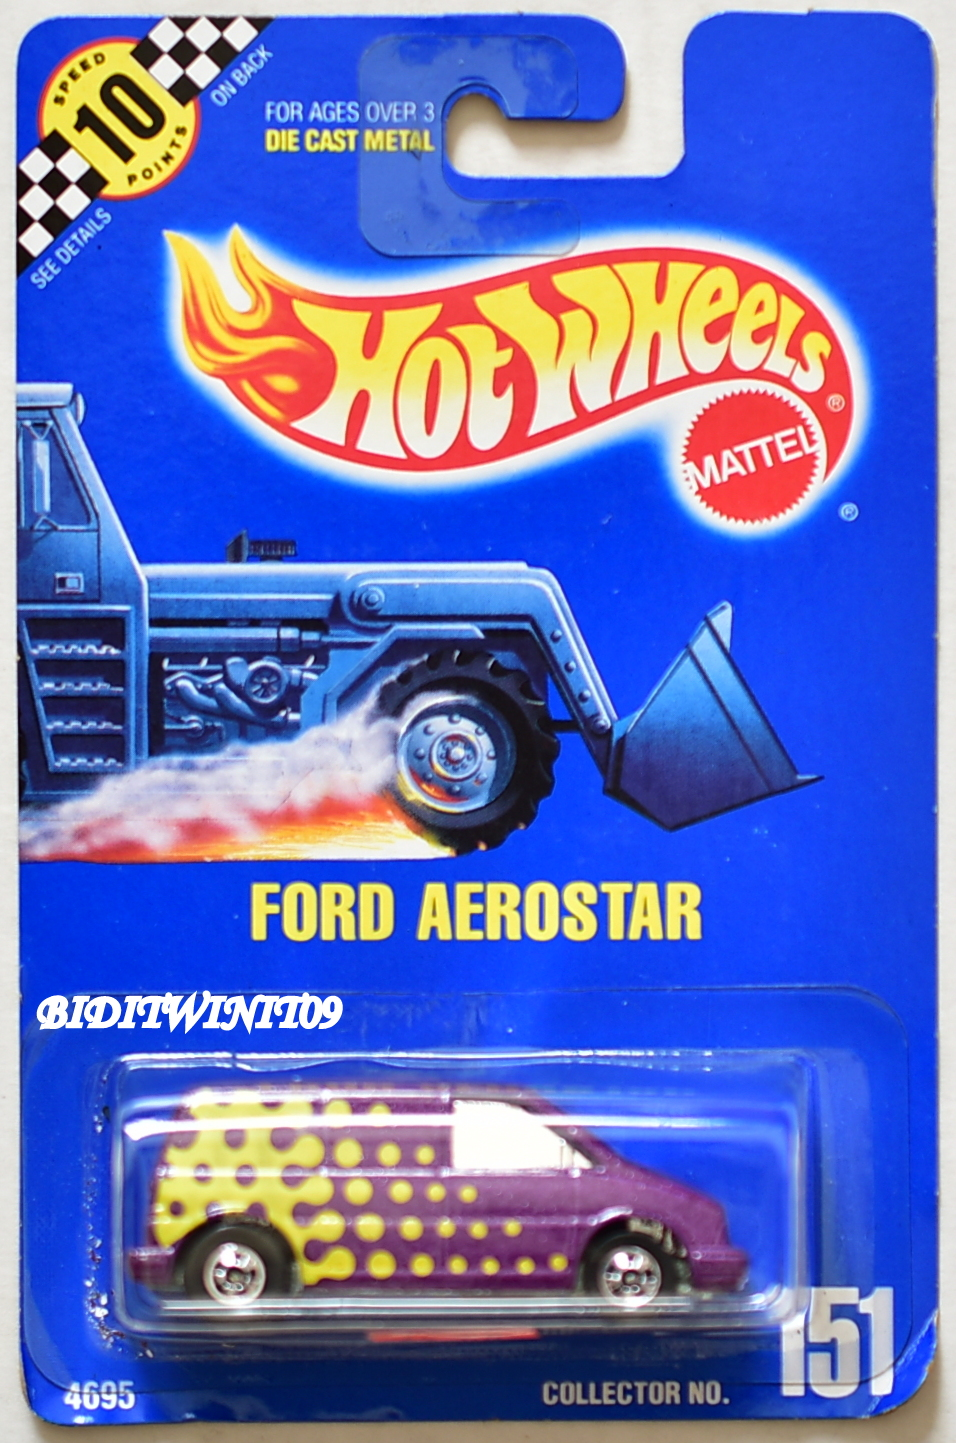 HOT WHEELS 1991 BLUE CARD FORD AEROSTAR #151 PURPLE - Click Image to Close